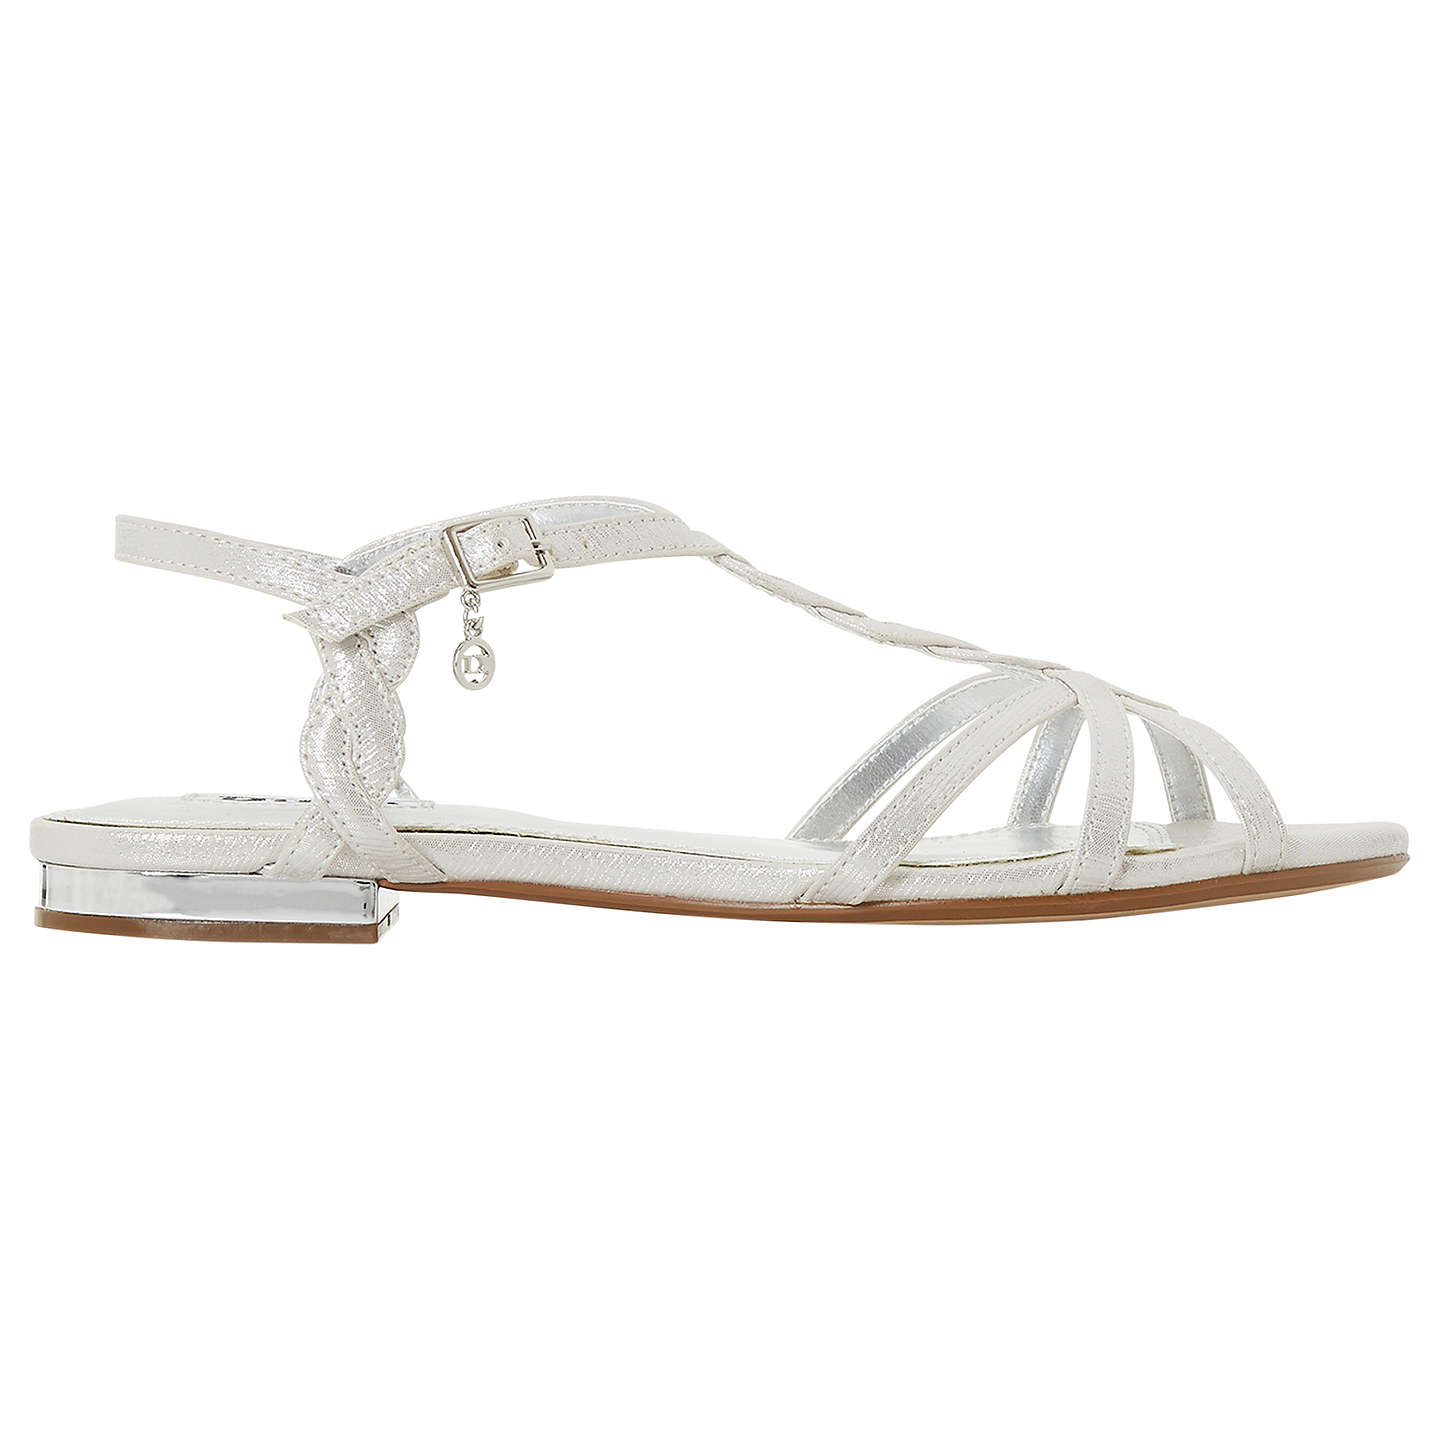 BuyDune Newark Strappy Flat Sandals, Silver, 3 Online at johnlewis.com